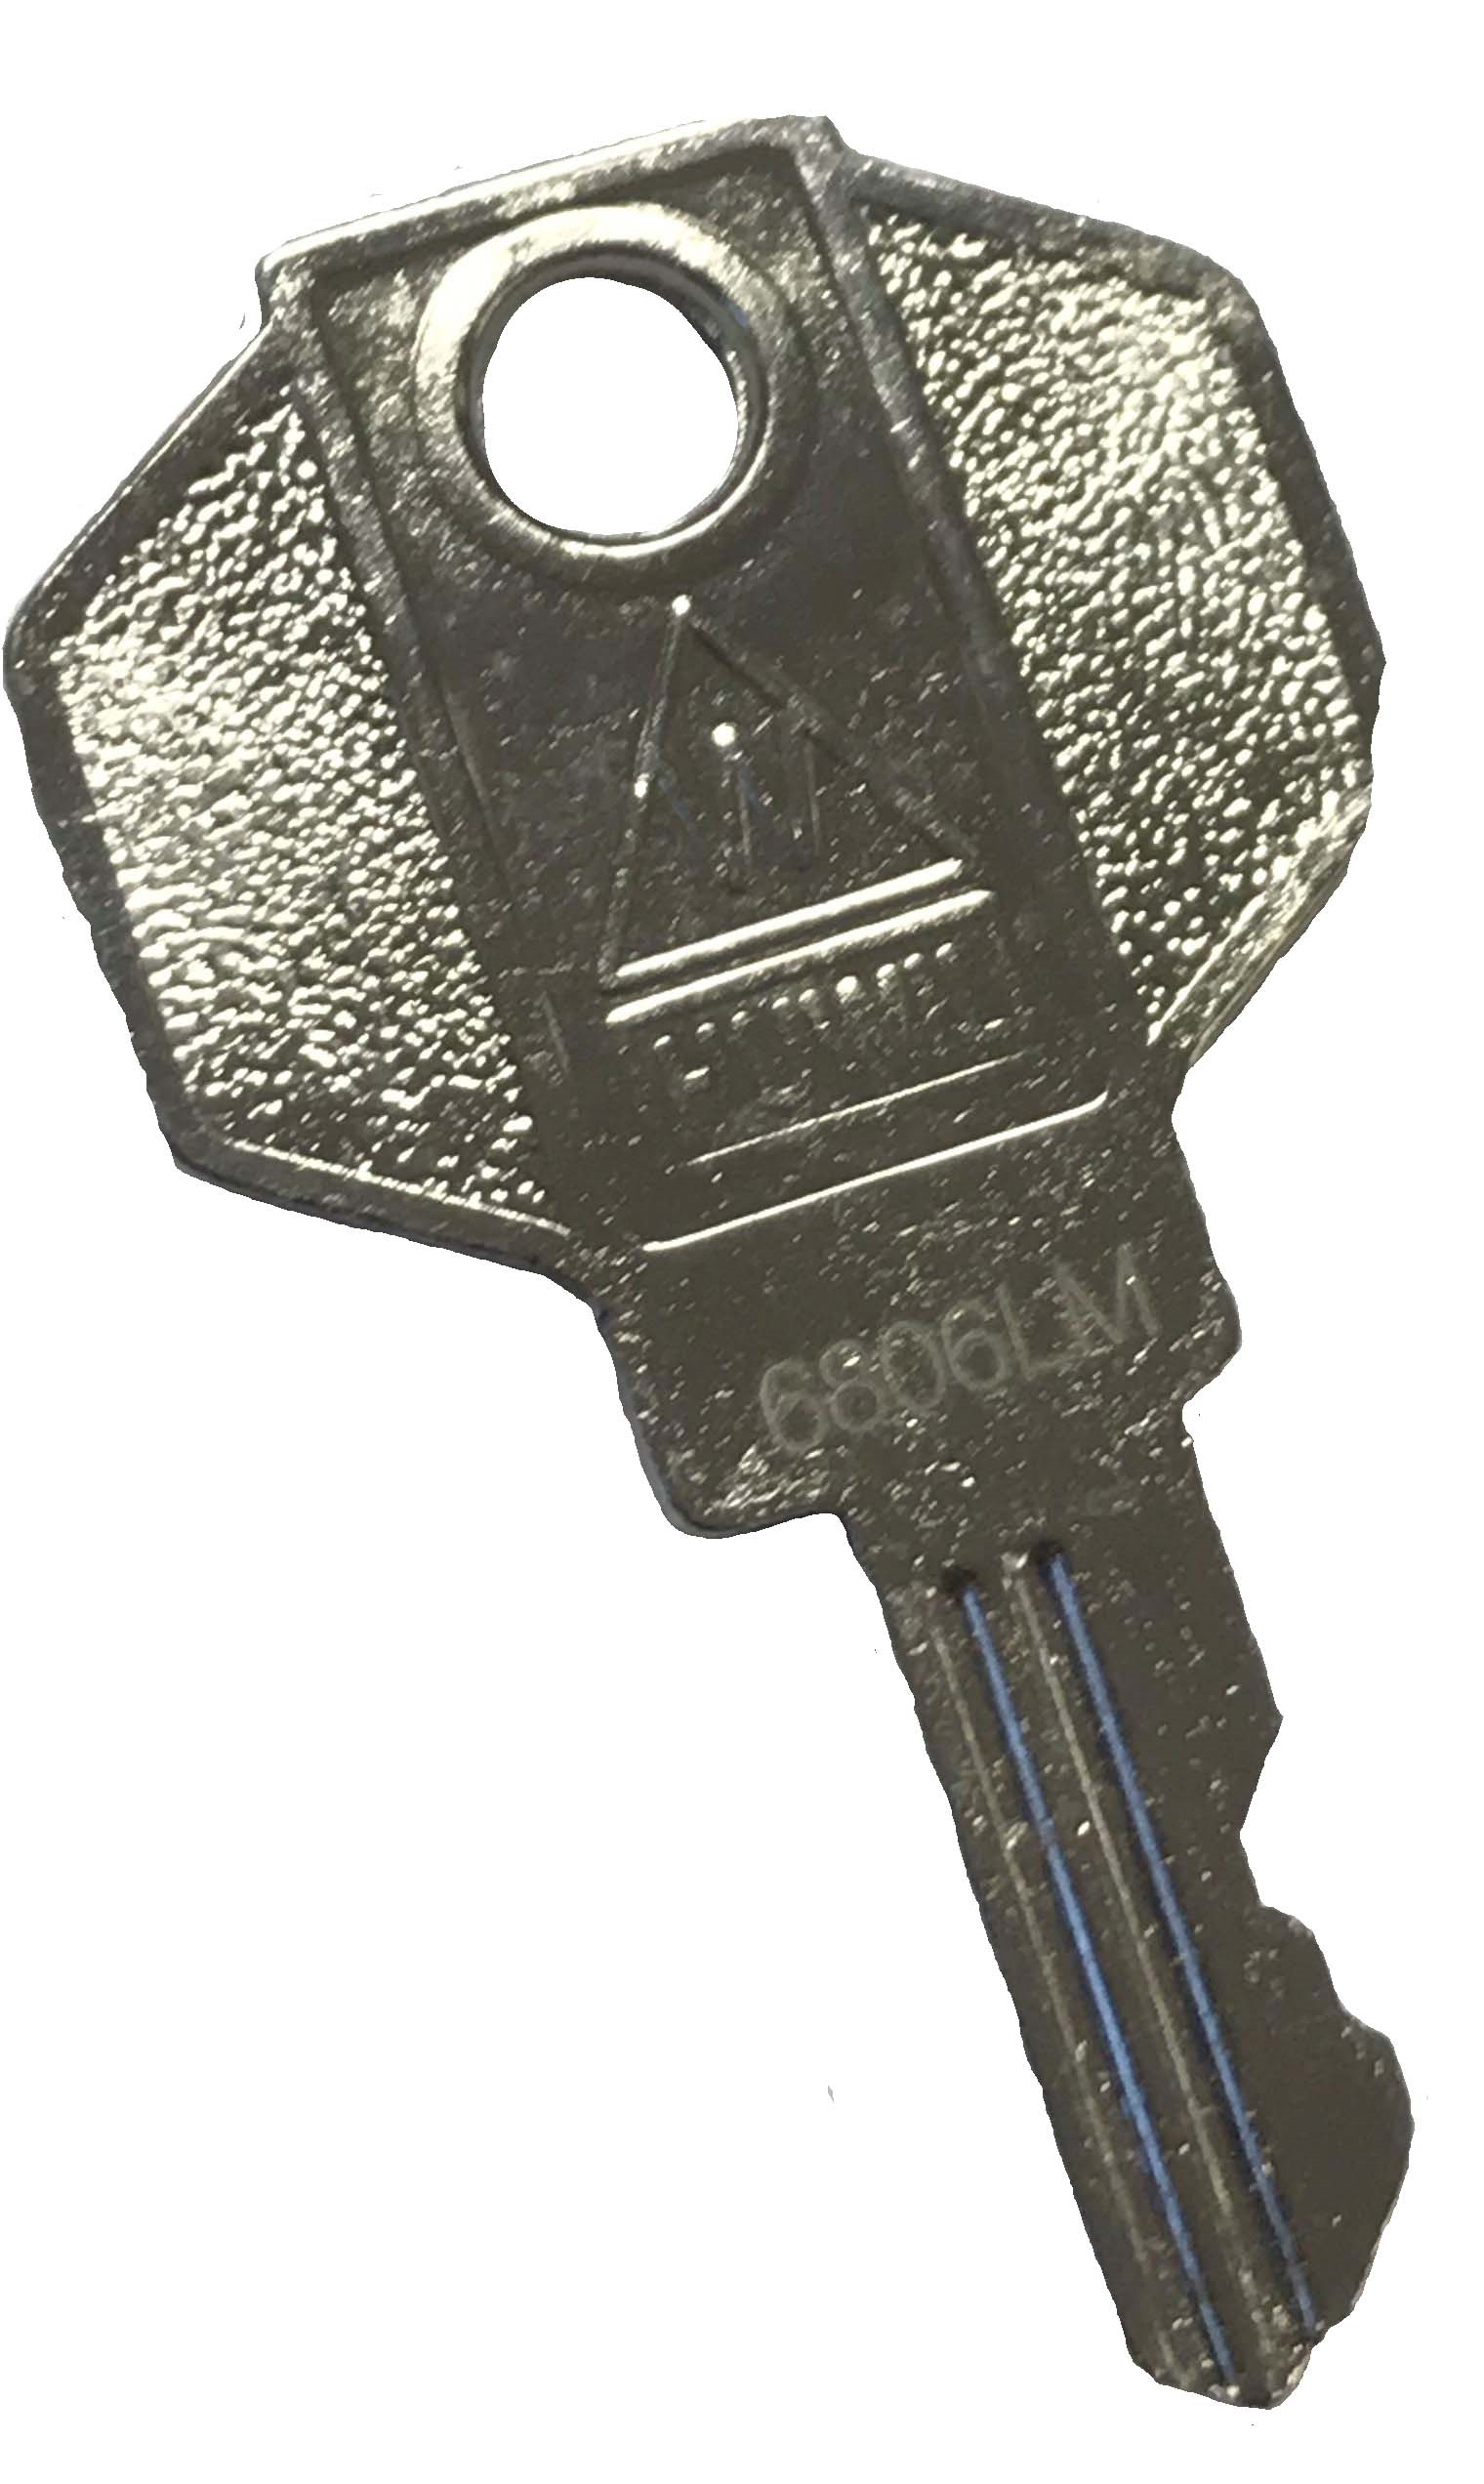 Huwil Master Keys for LM Series Huwil Master Keys for LM Series Details  Huwil Master Key  LM Series Only.